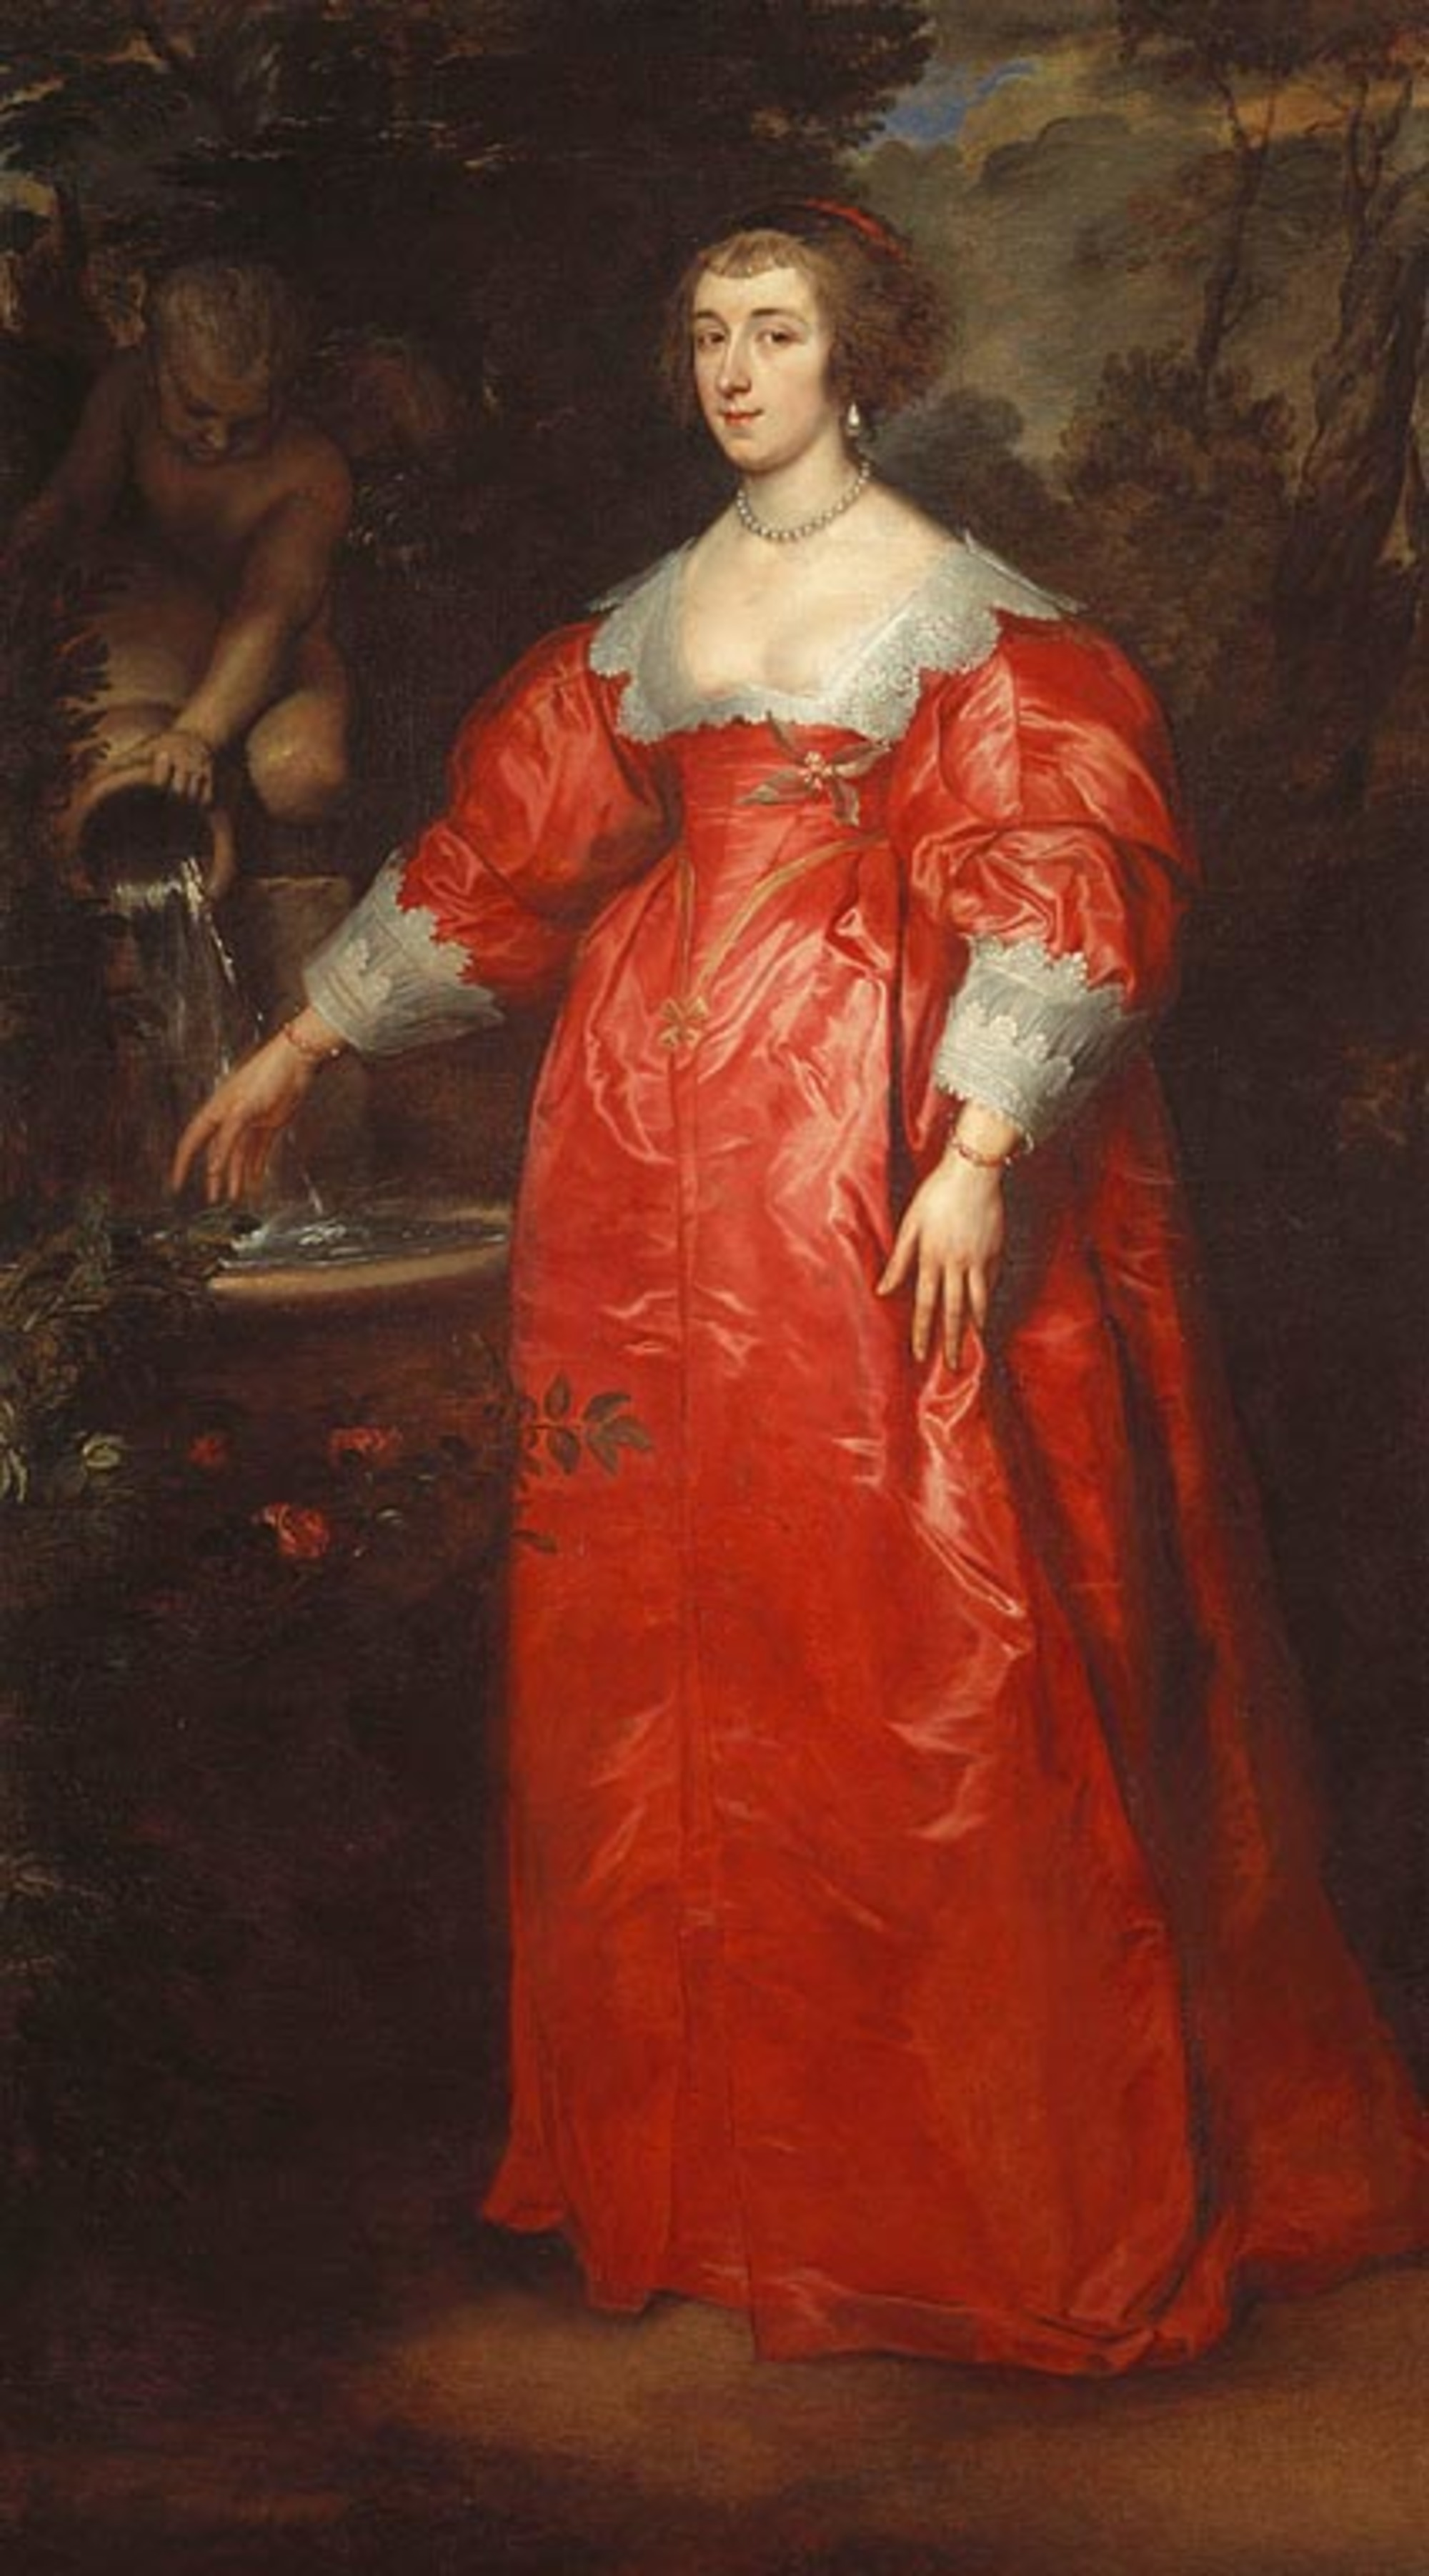 Van-Dyck---Portrait-of-an-Unknown-lady-1634-35.jpg